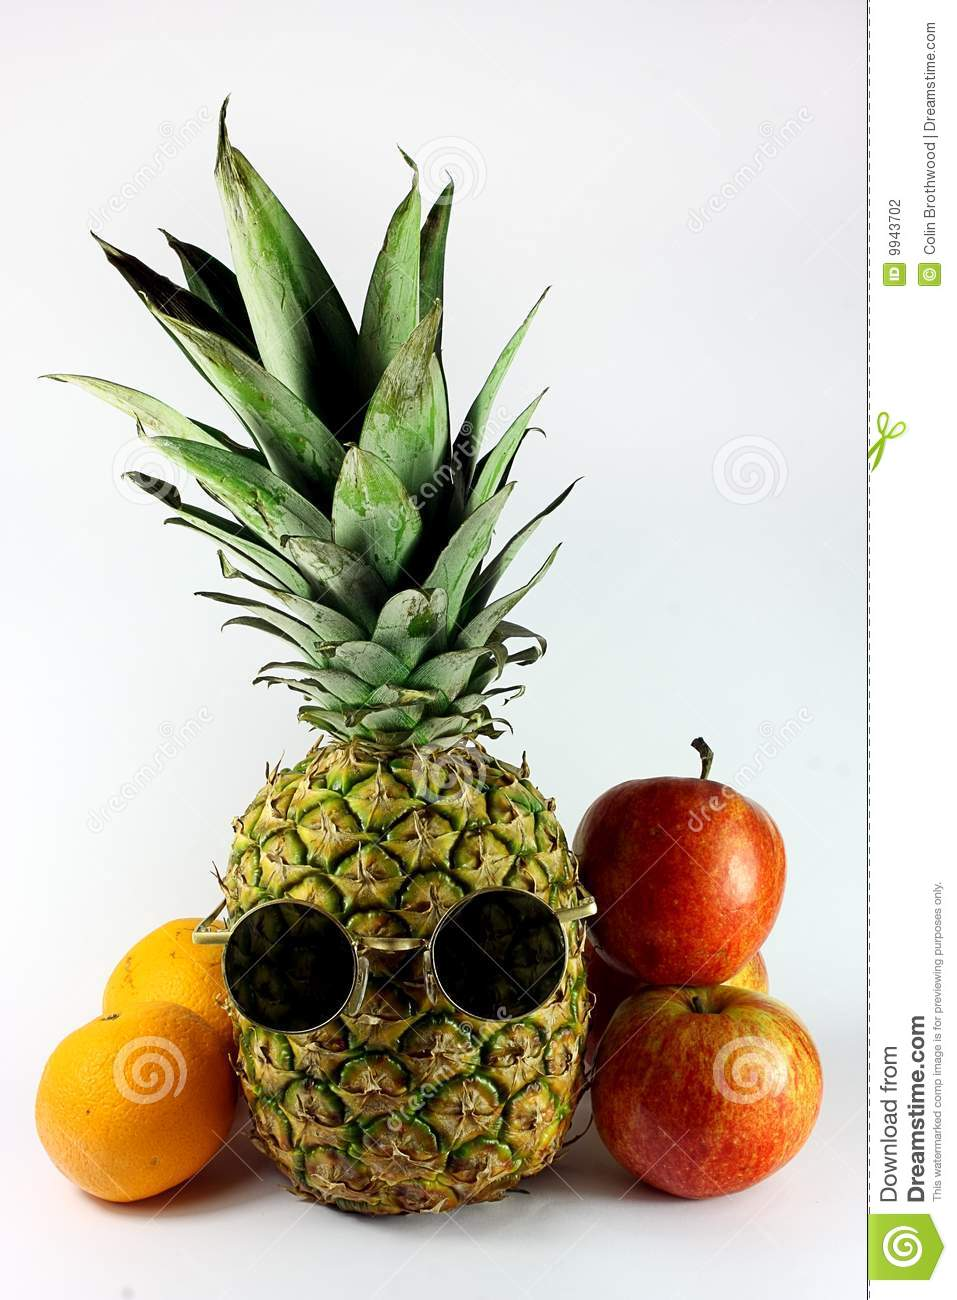 Summer Girl Wallpaper Pineapple With Sunglasses And Fruit Stock Photography